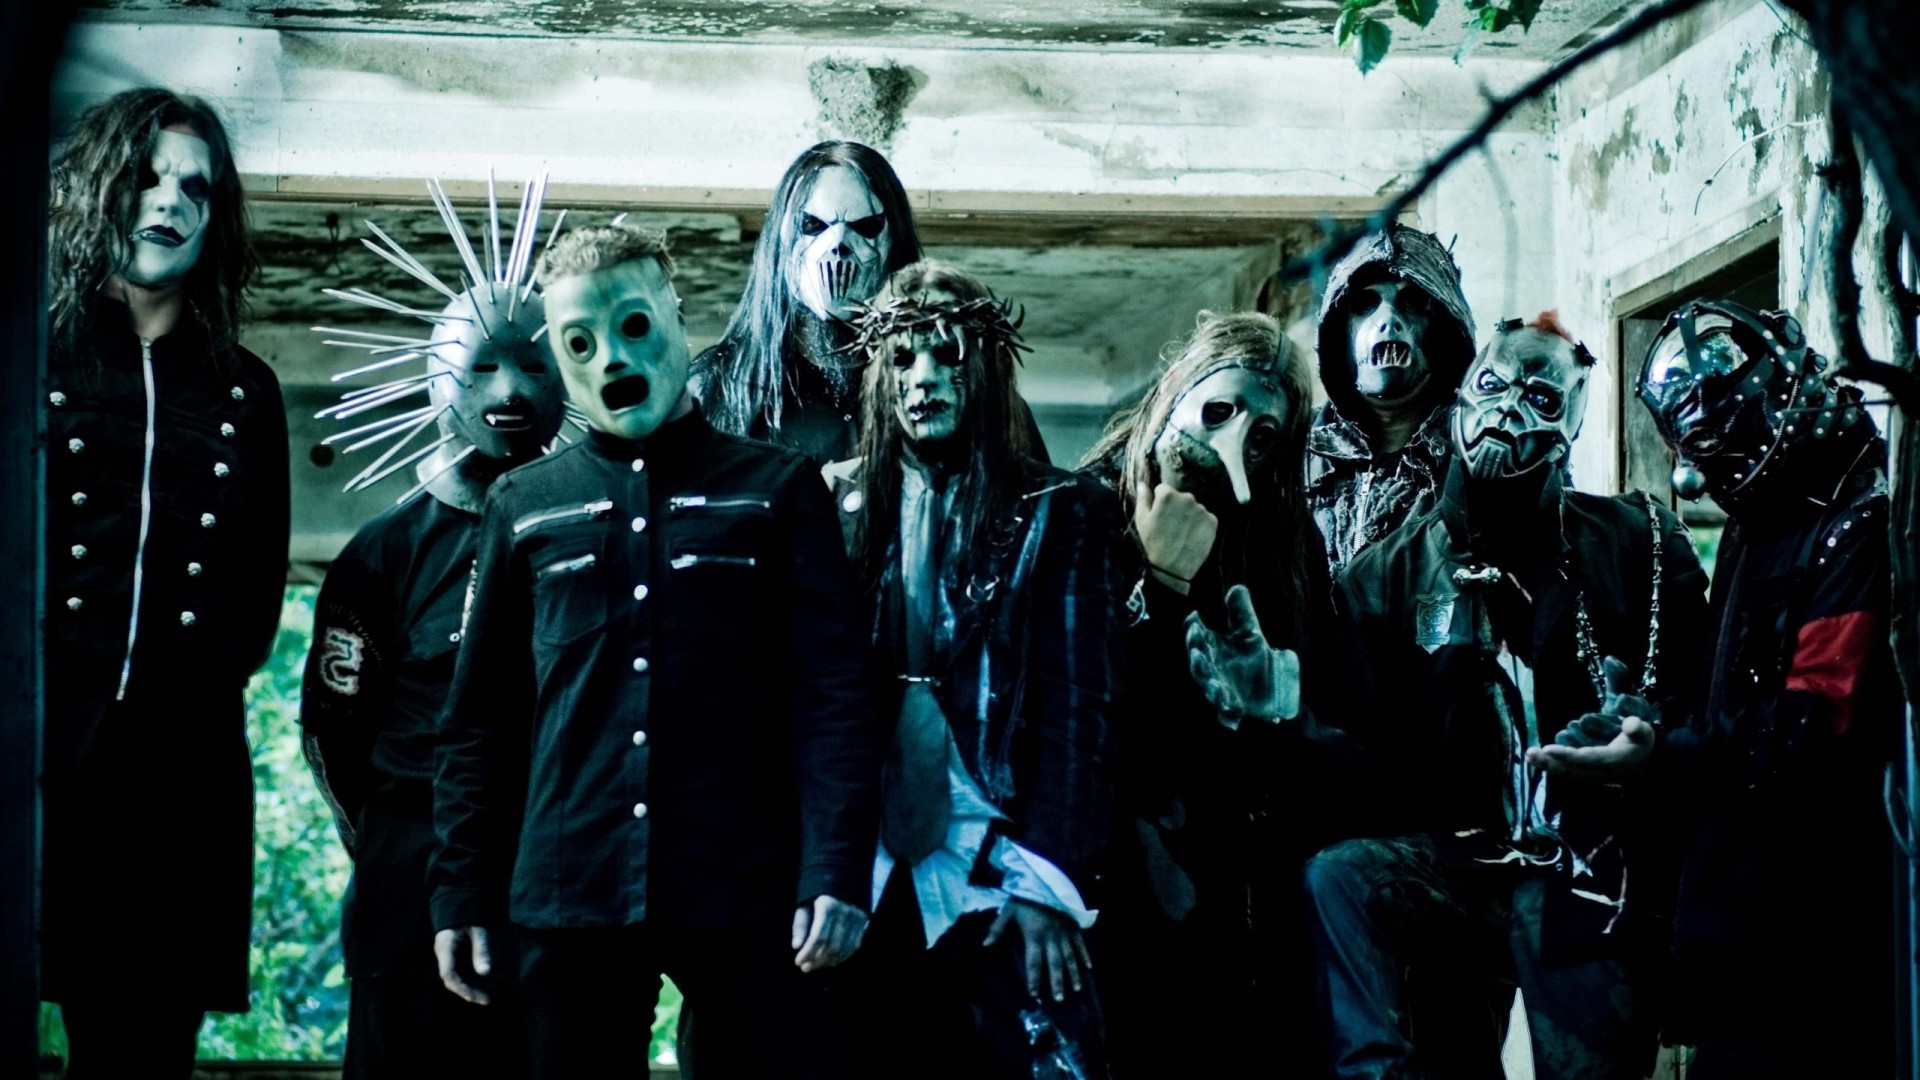 Army Wallpaper Full Hd Slipknot Wallpapers Hd Desktop And Mobile Backgrounds